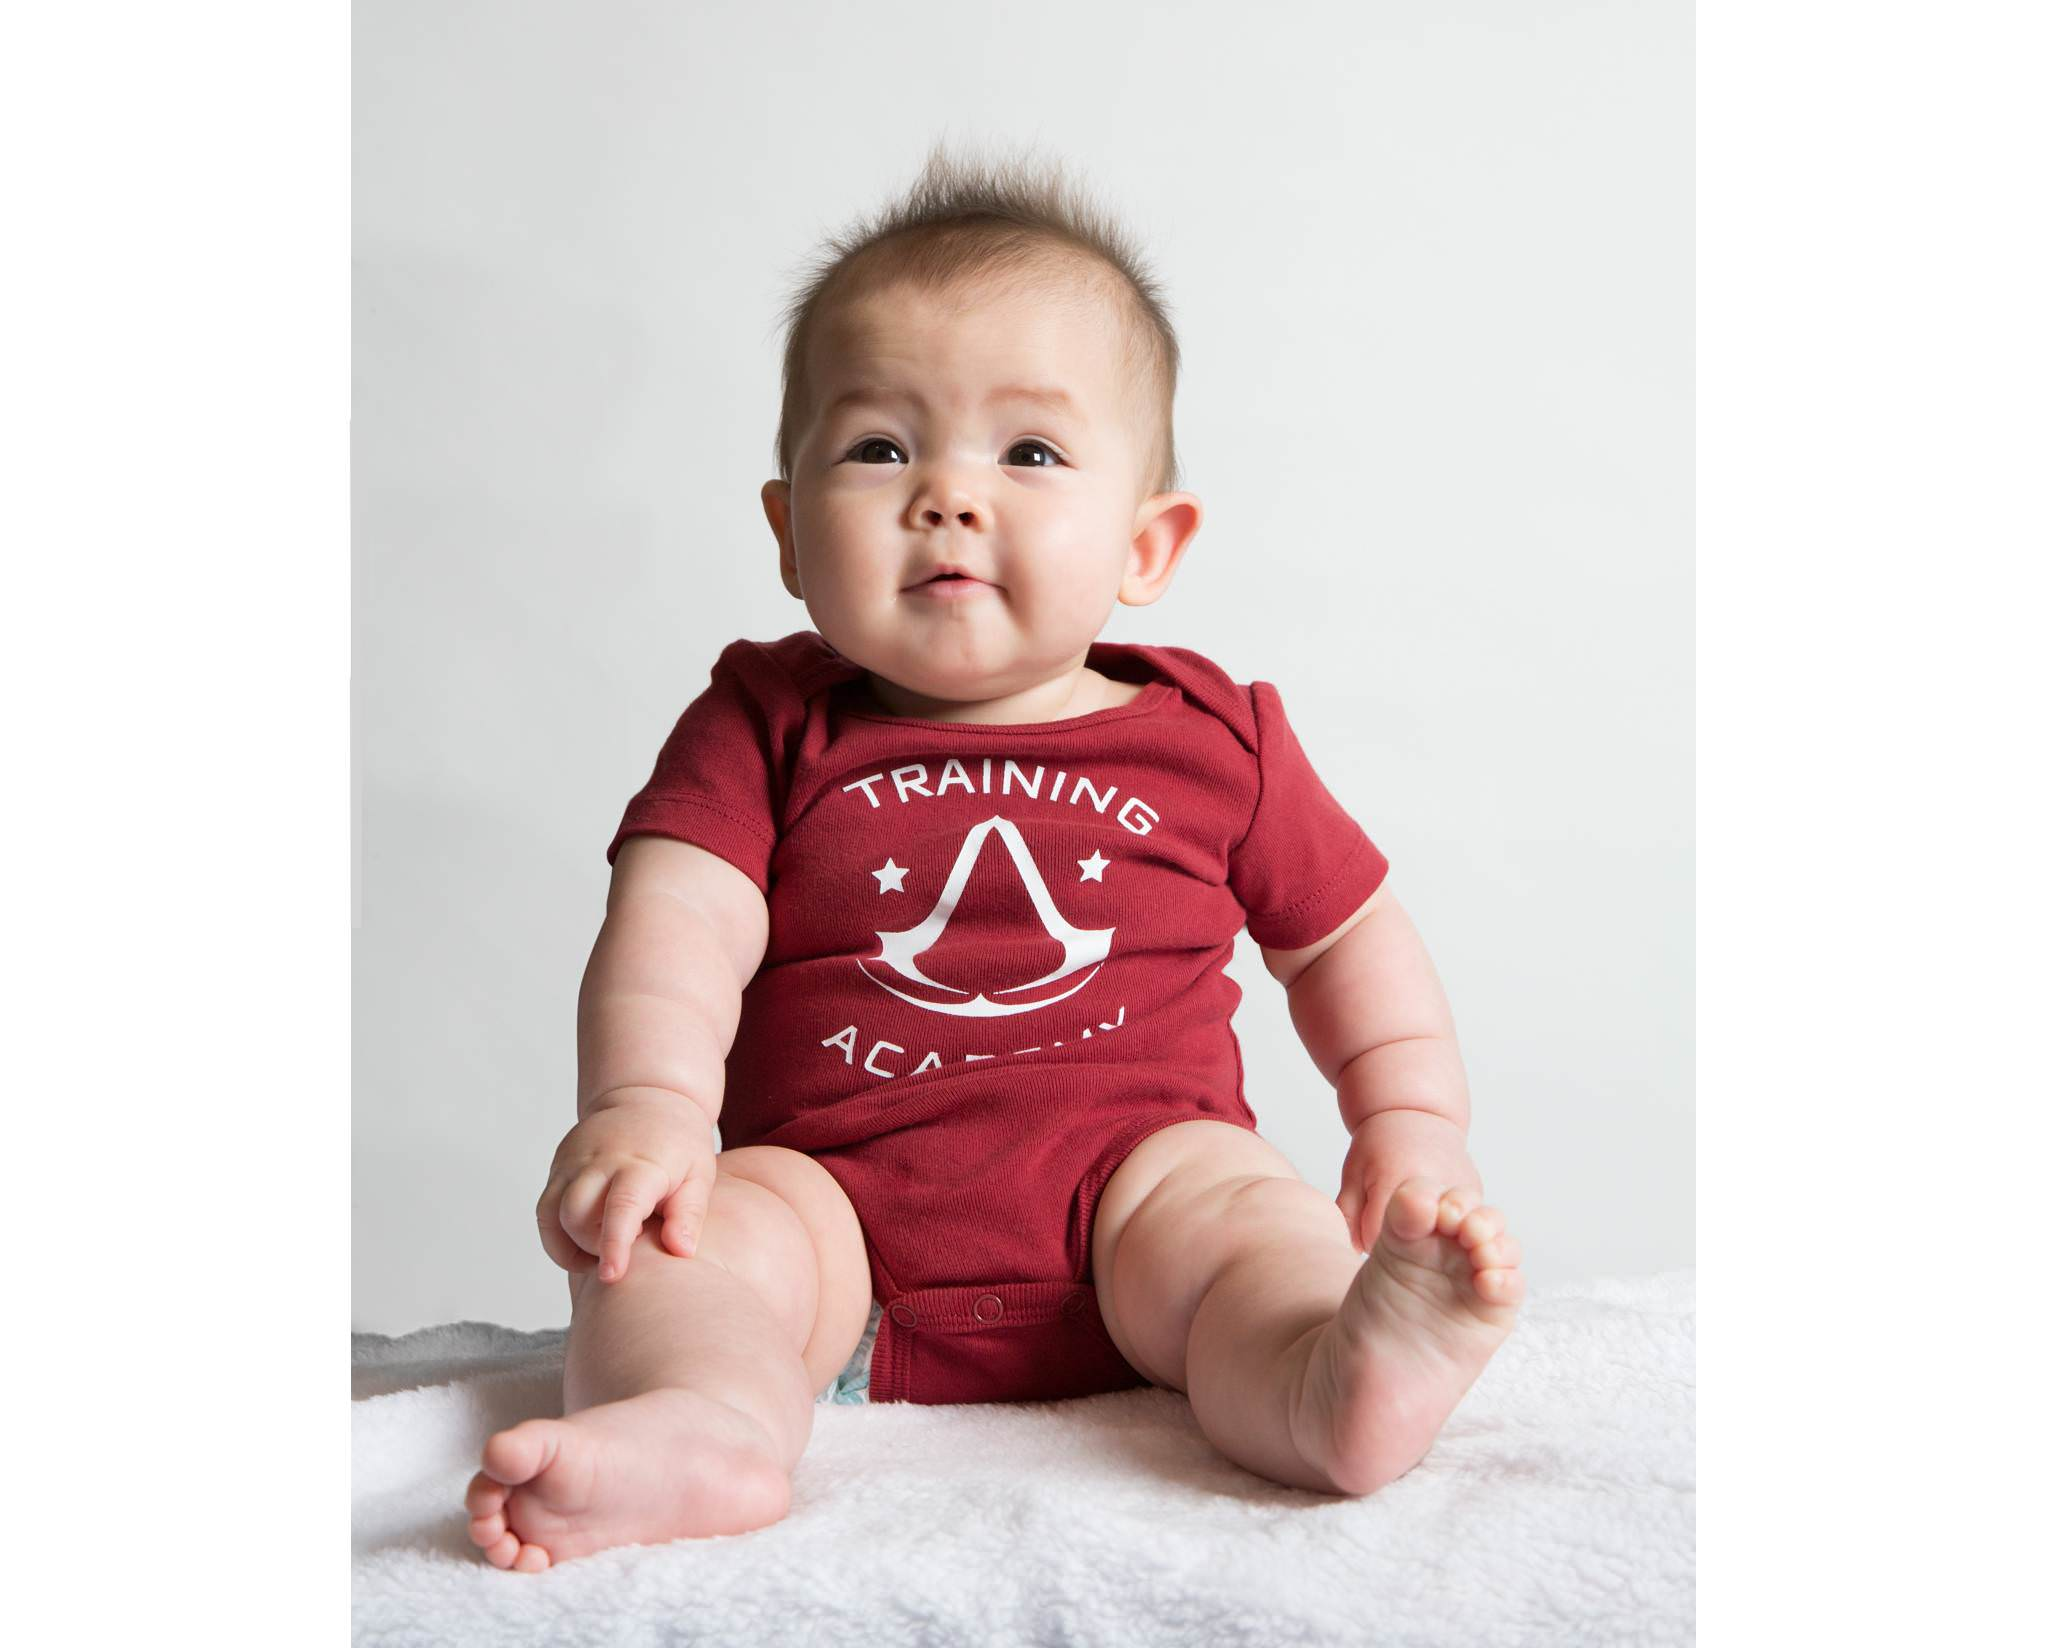 fad83b798b2d Assassin s Creed Baby Collection - Training Academy Red Onesie